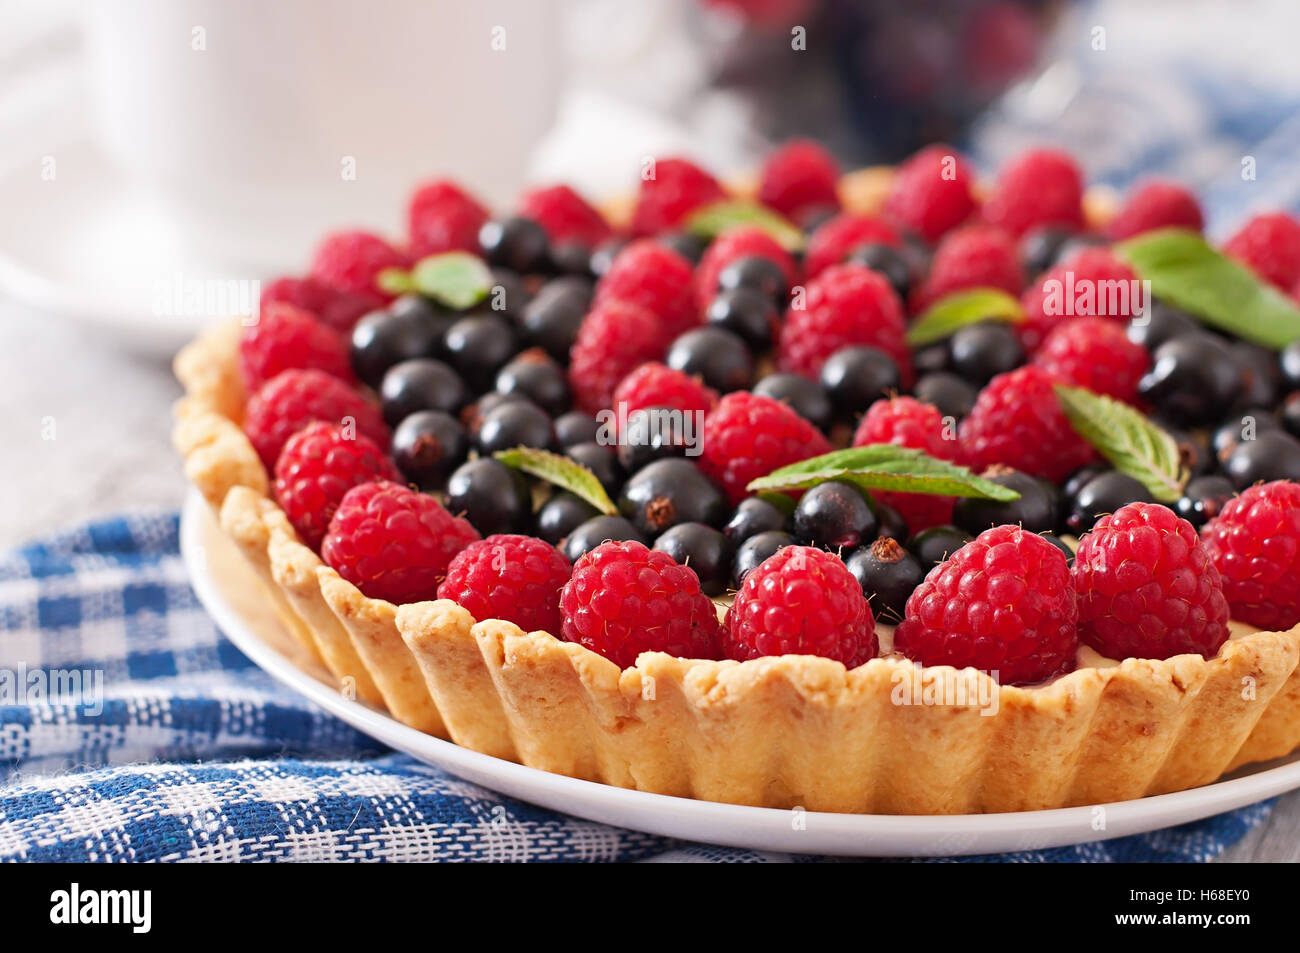 Tart with berries and custard. - Stock Image